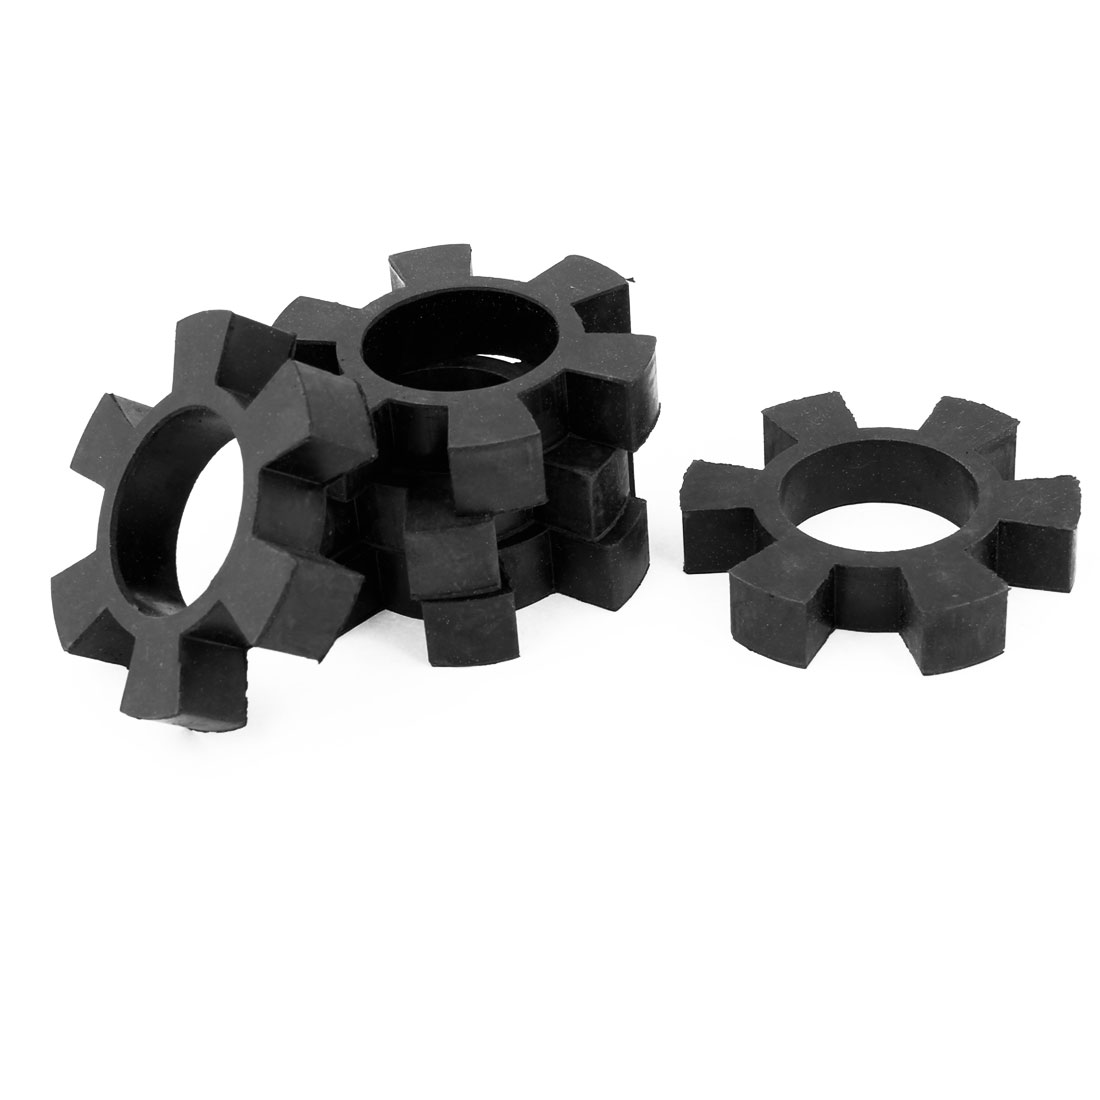 "5 Pcs 3.2"" OD Drive Shaft Coupling Damper Insert Spider Cushion Black"